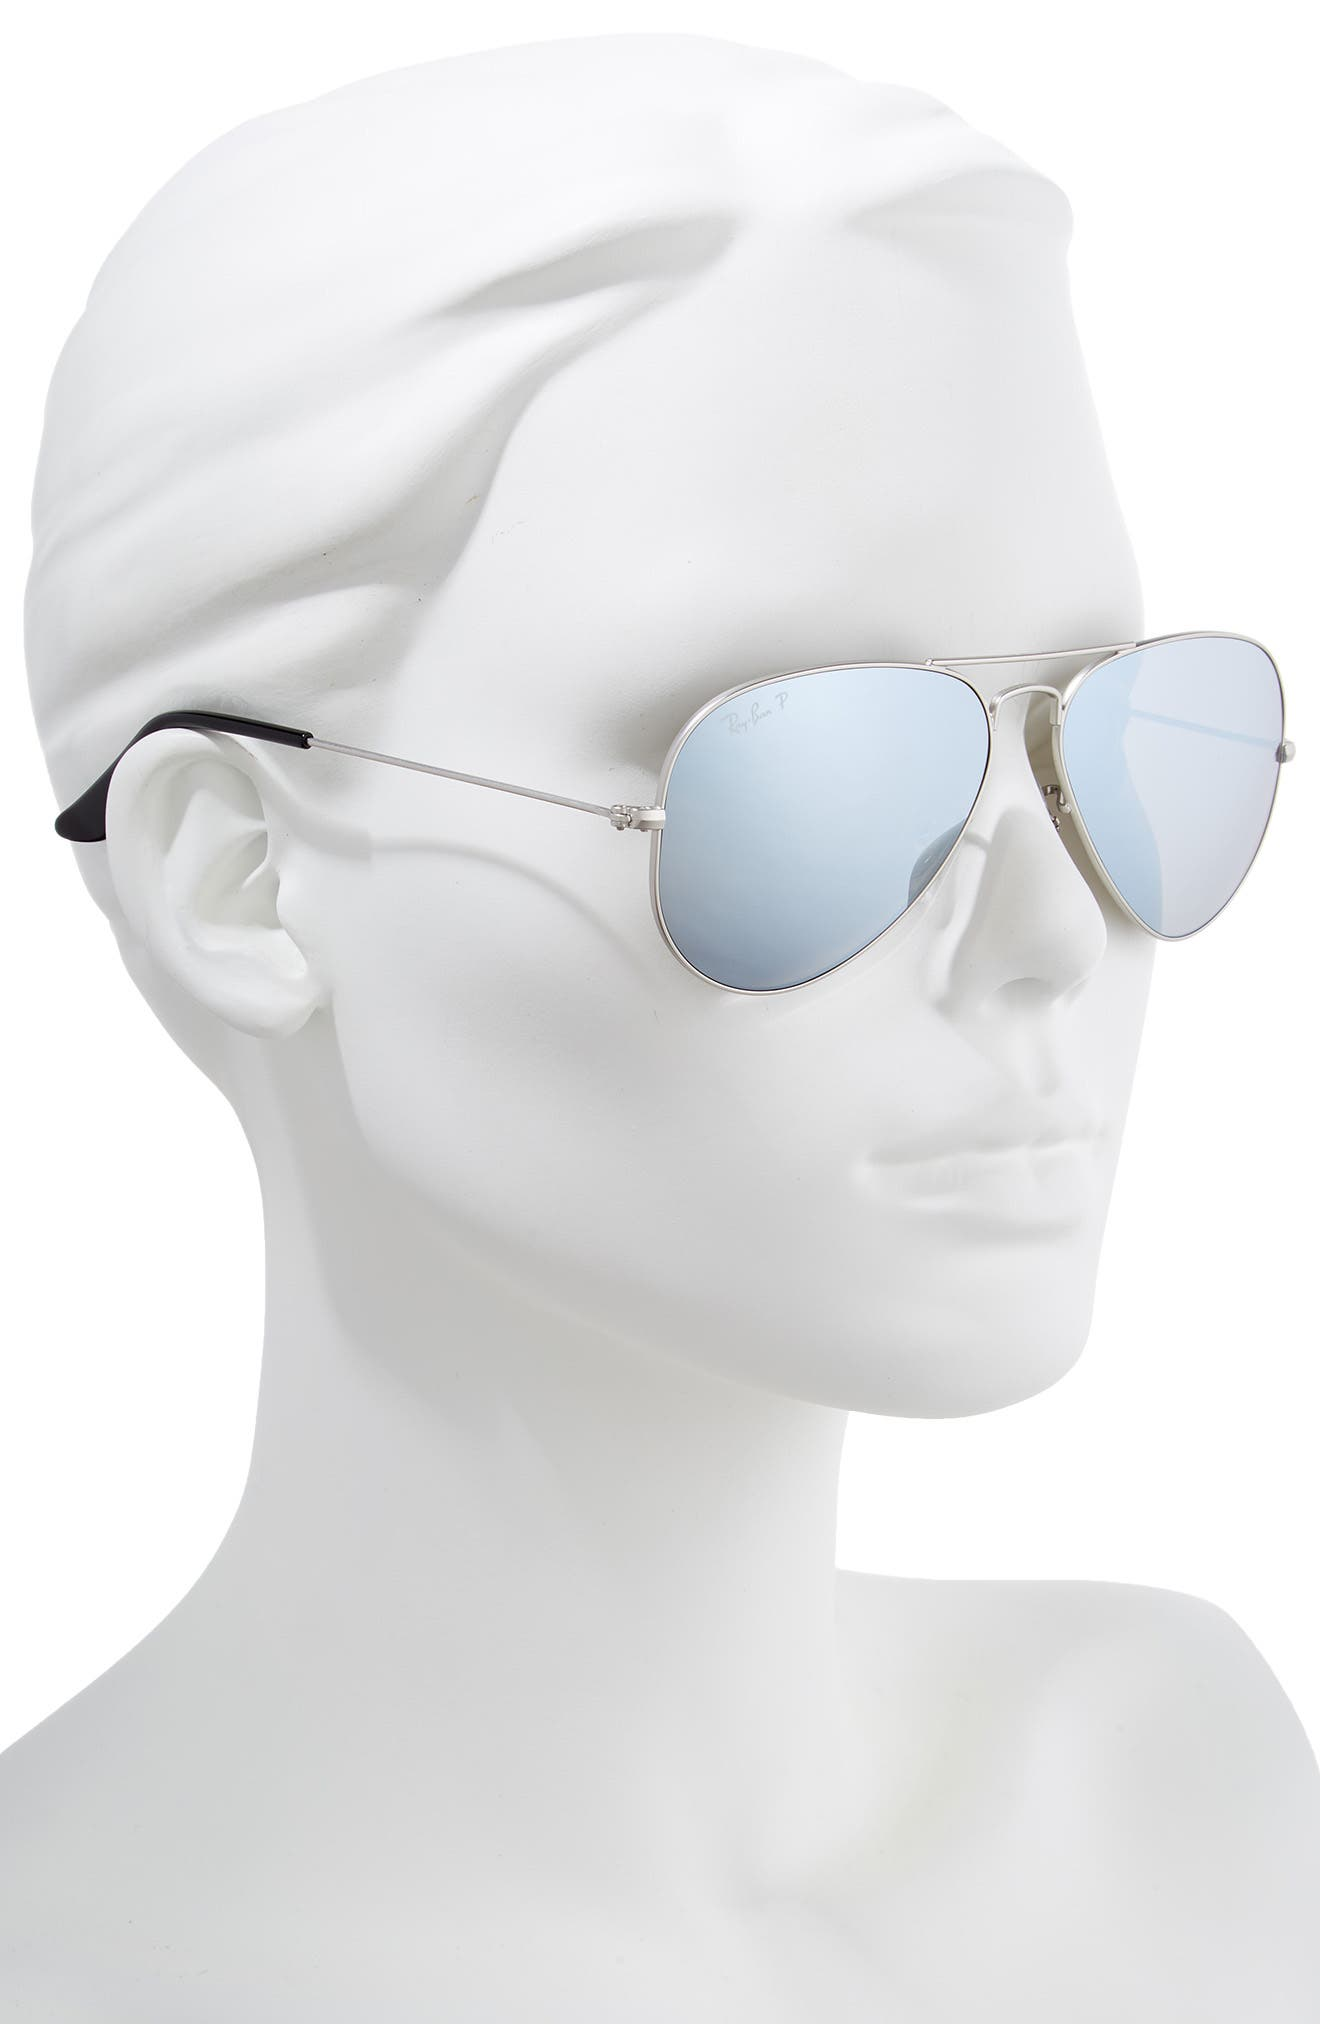 RAY-BAN, Standard Icons 58mm Mirrored Polarized Aviator Sunglasses, Alternate thumbnail 2, color, SILVER/ SILVER MIRROR